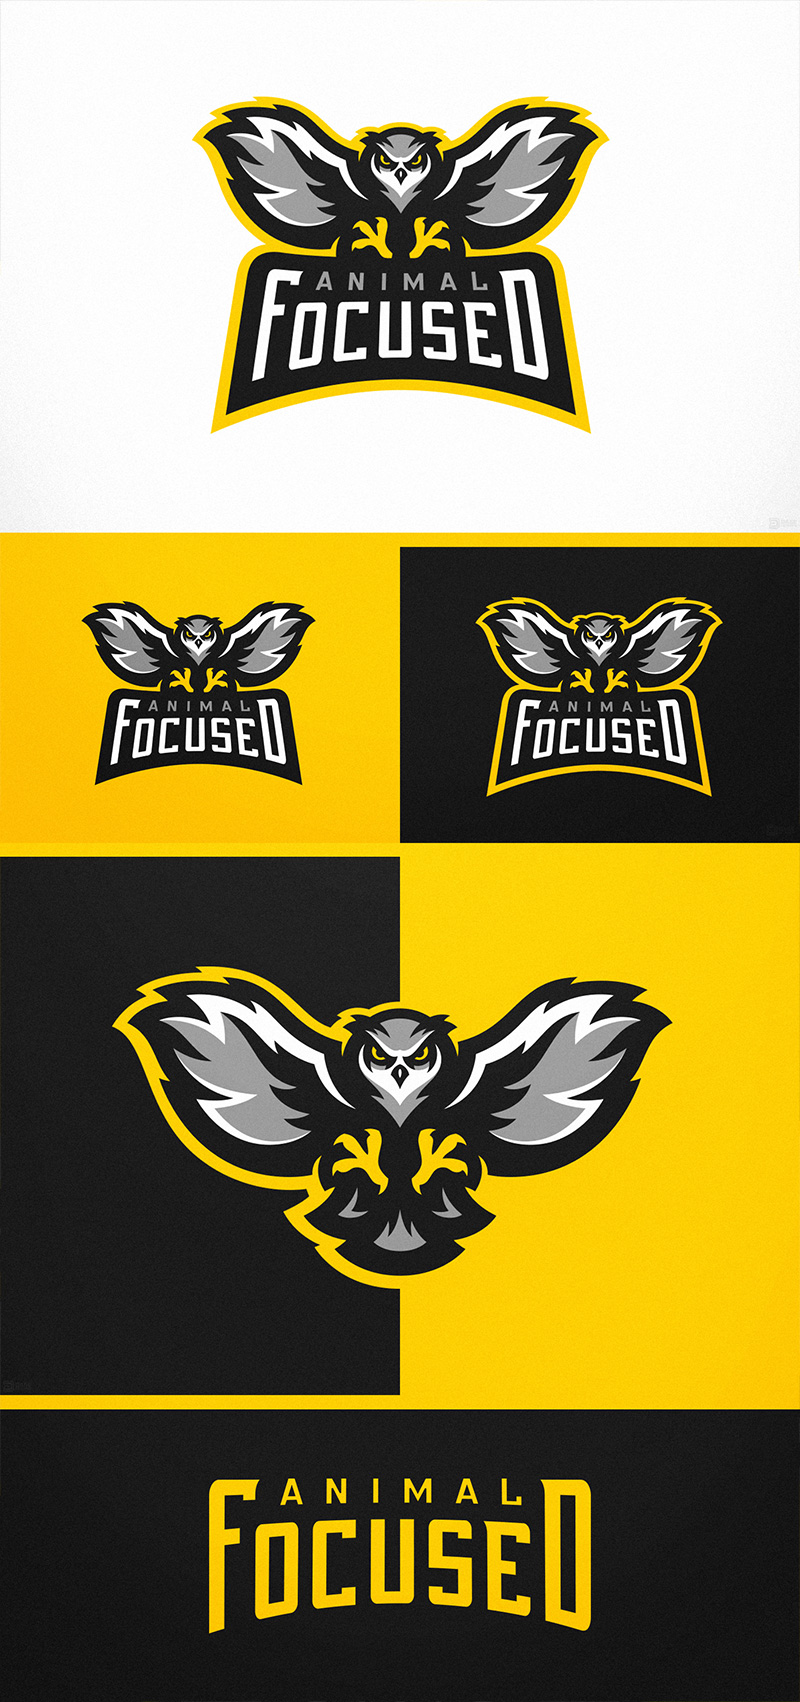 Proyecto de logotipo de Animal Focused Owl eSports